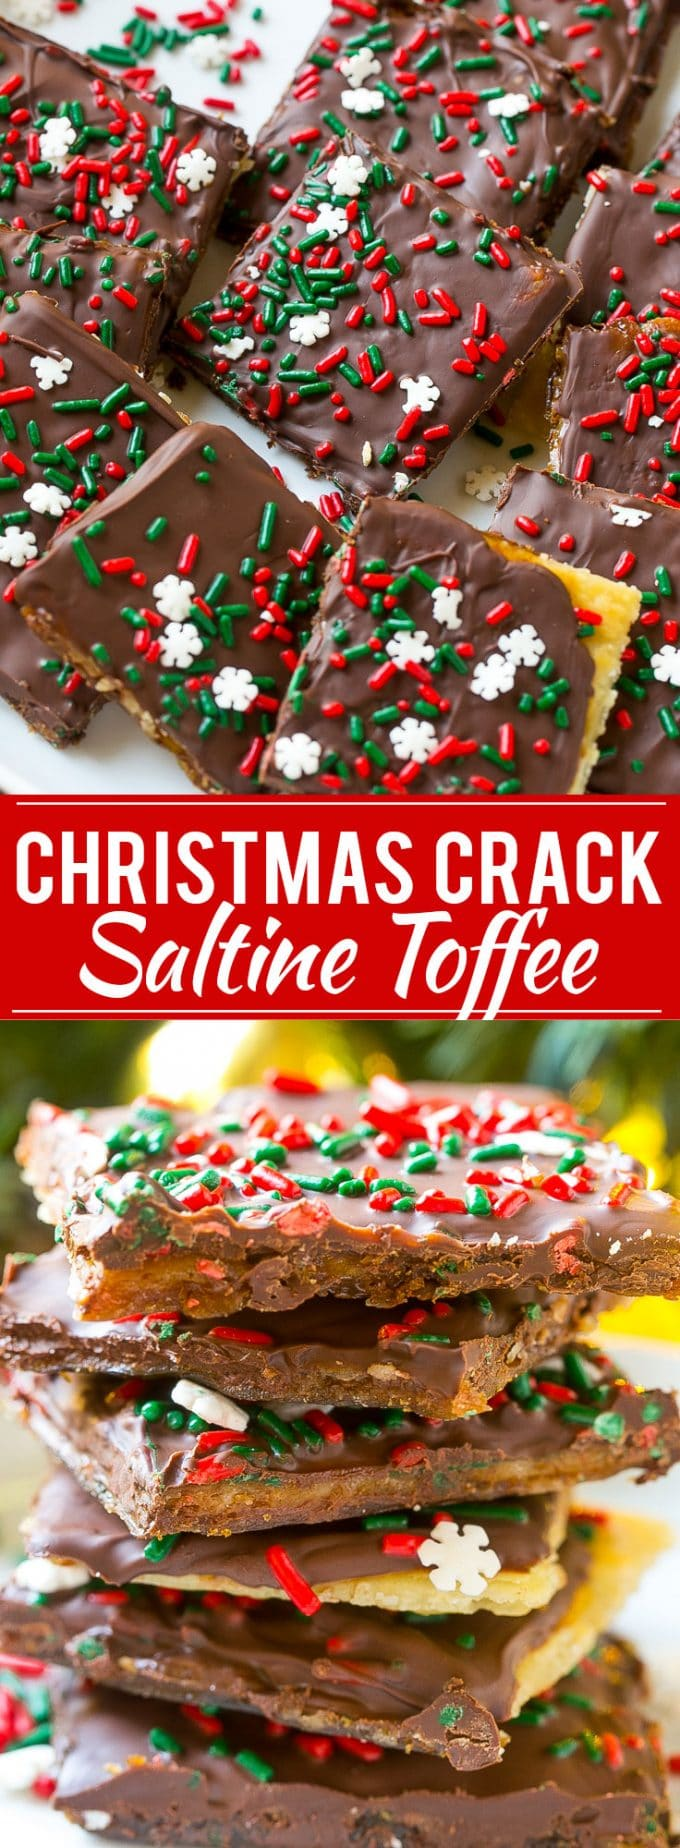 Christmas Crack Recipe | Saltine Toffee Recipe | Toffee Recipe | Christmas Toffee | Chocolate Toffee | Easy Dessert Recipe | Easy Candy Recipe | Homemade Toffee